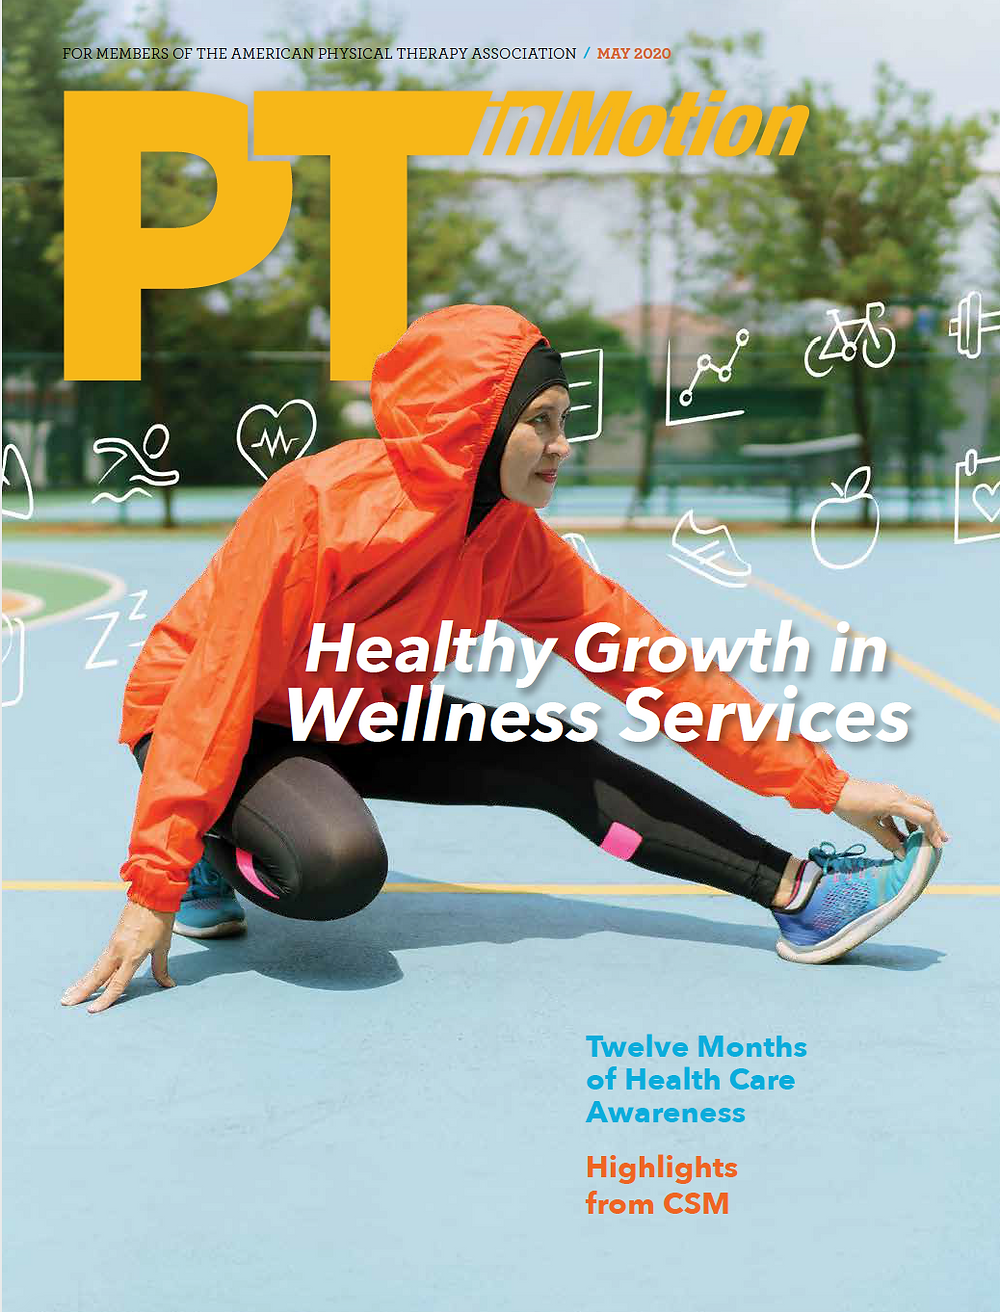 GroupHab model of physical therapist designed and led fitness classes and wellness services featured by the American Physical Therapy Association PT in Motion professional magazine